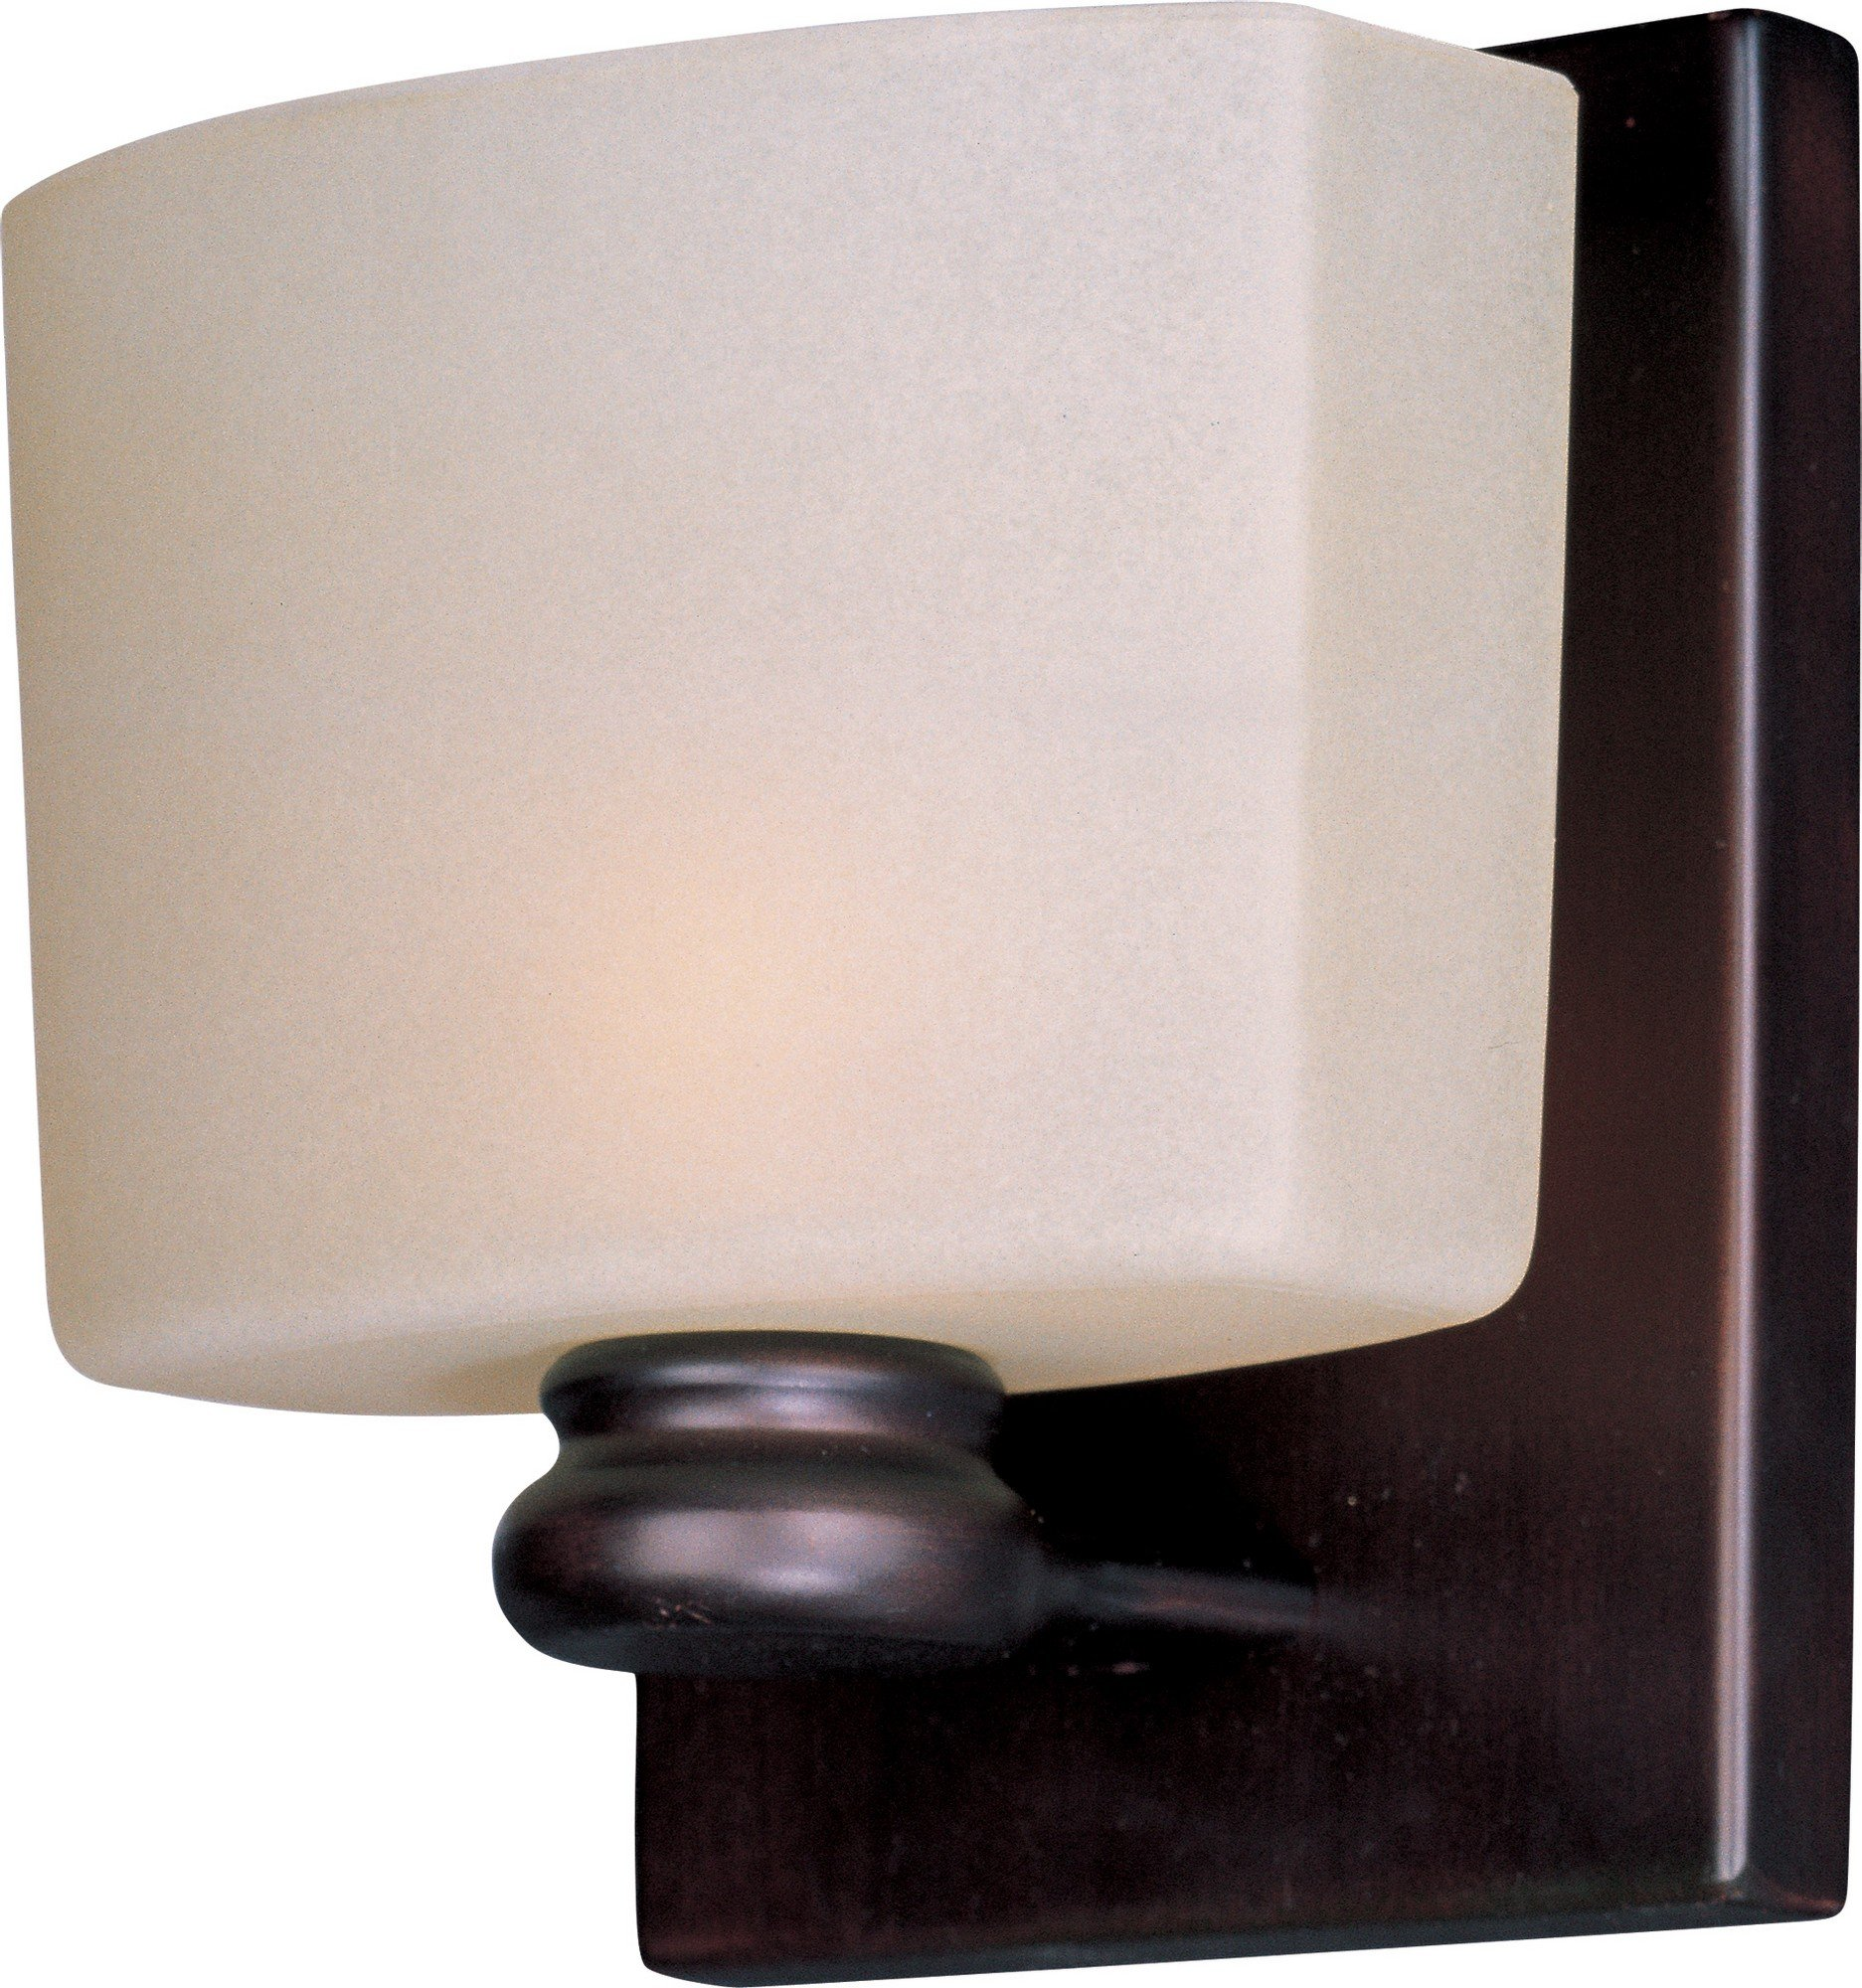 Maxim Lighting 9001DWOI Essence 1 Light ADA Compliant Wall Sconce – Outdoor Lighting with Oil Rubbed Bronze Finish, Dusty White Glass. Lighting Fixtures